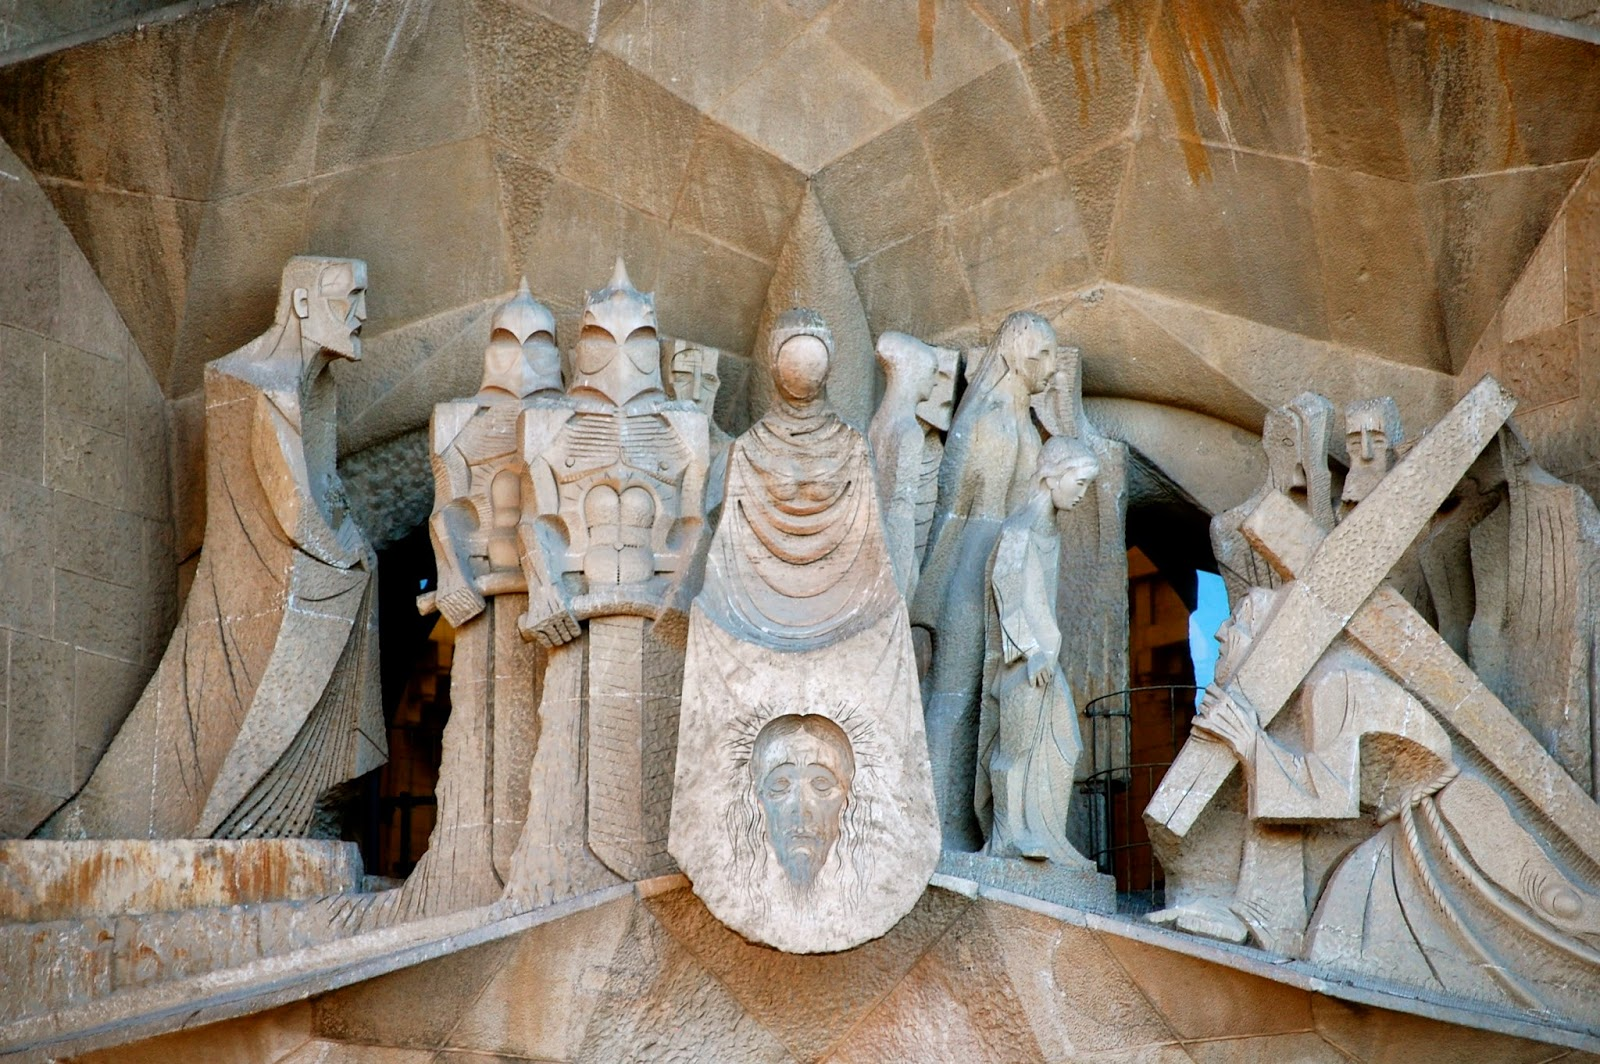 Veronica and the hollow-face image of Jesus, Passion Facade, Sagrada Familia